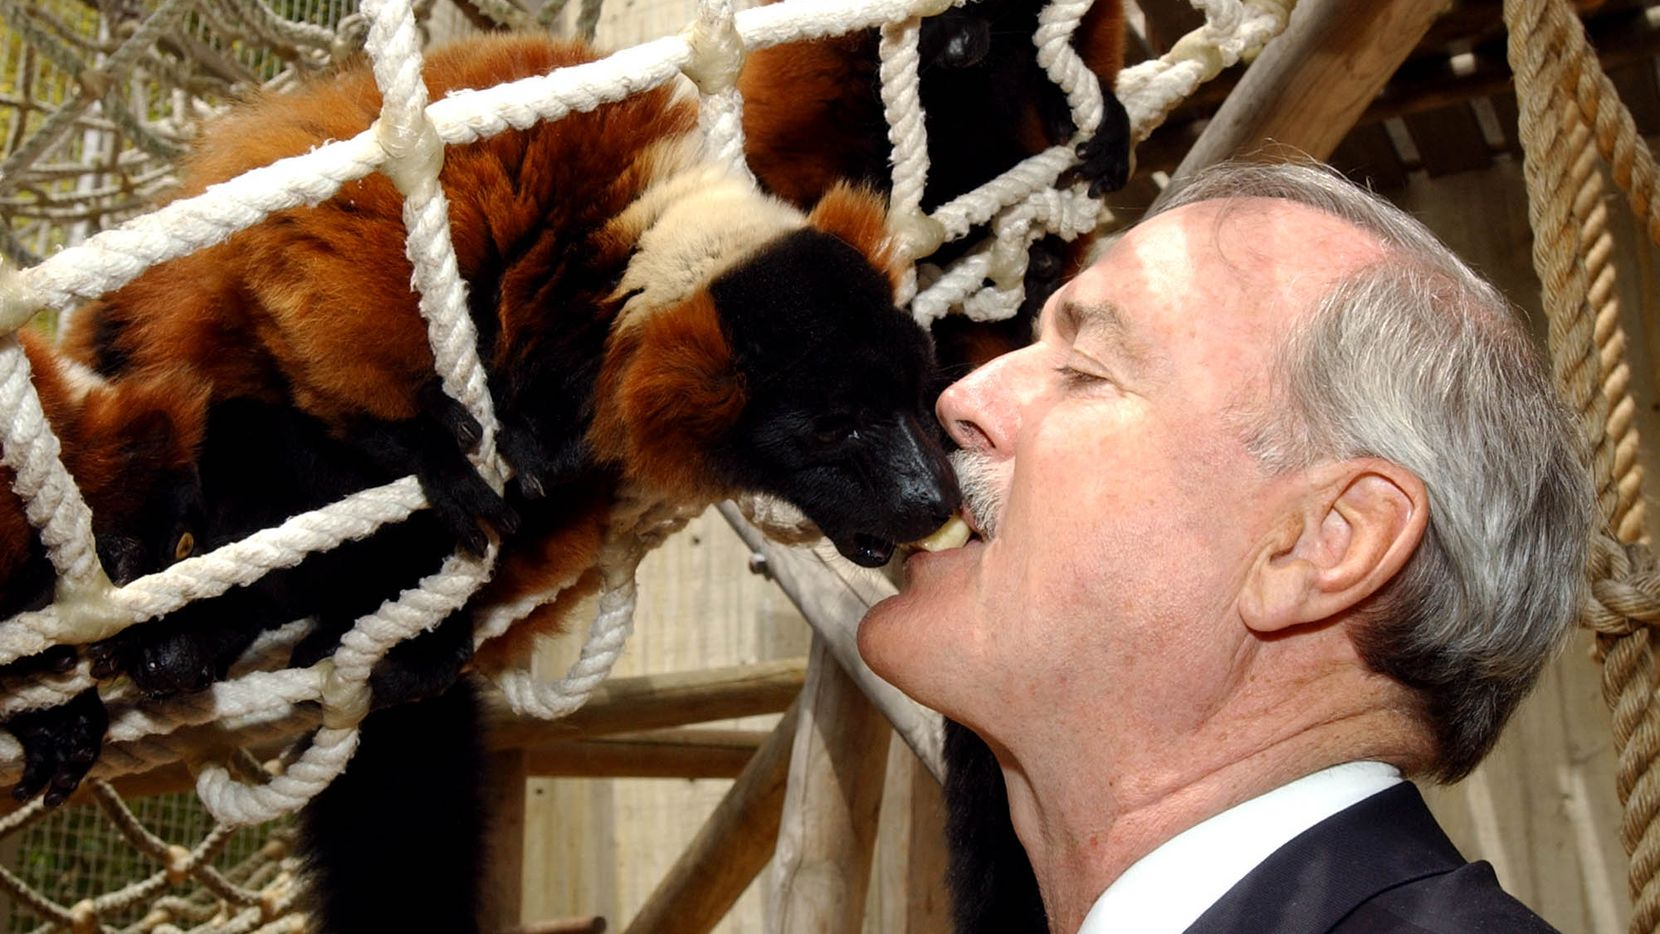 Actor John Cleese feeds a lemur from his mouth at the San Francisco Zoo, Sunday, June 2, 2002, in San Francisco. Cleese, a longtime lemur advocate, visited the zoo to help kick off the opening of the Lipman Family Lemur Forest, which opens to the public on June 29, 2002.